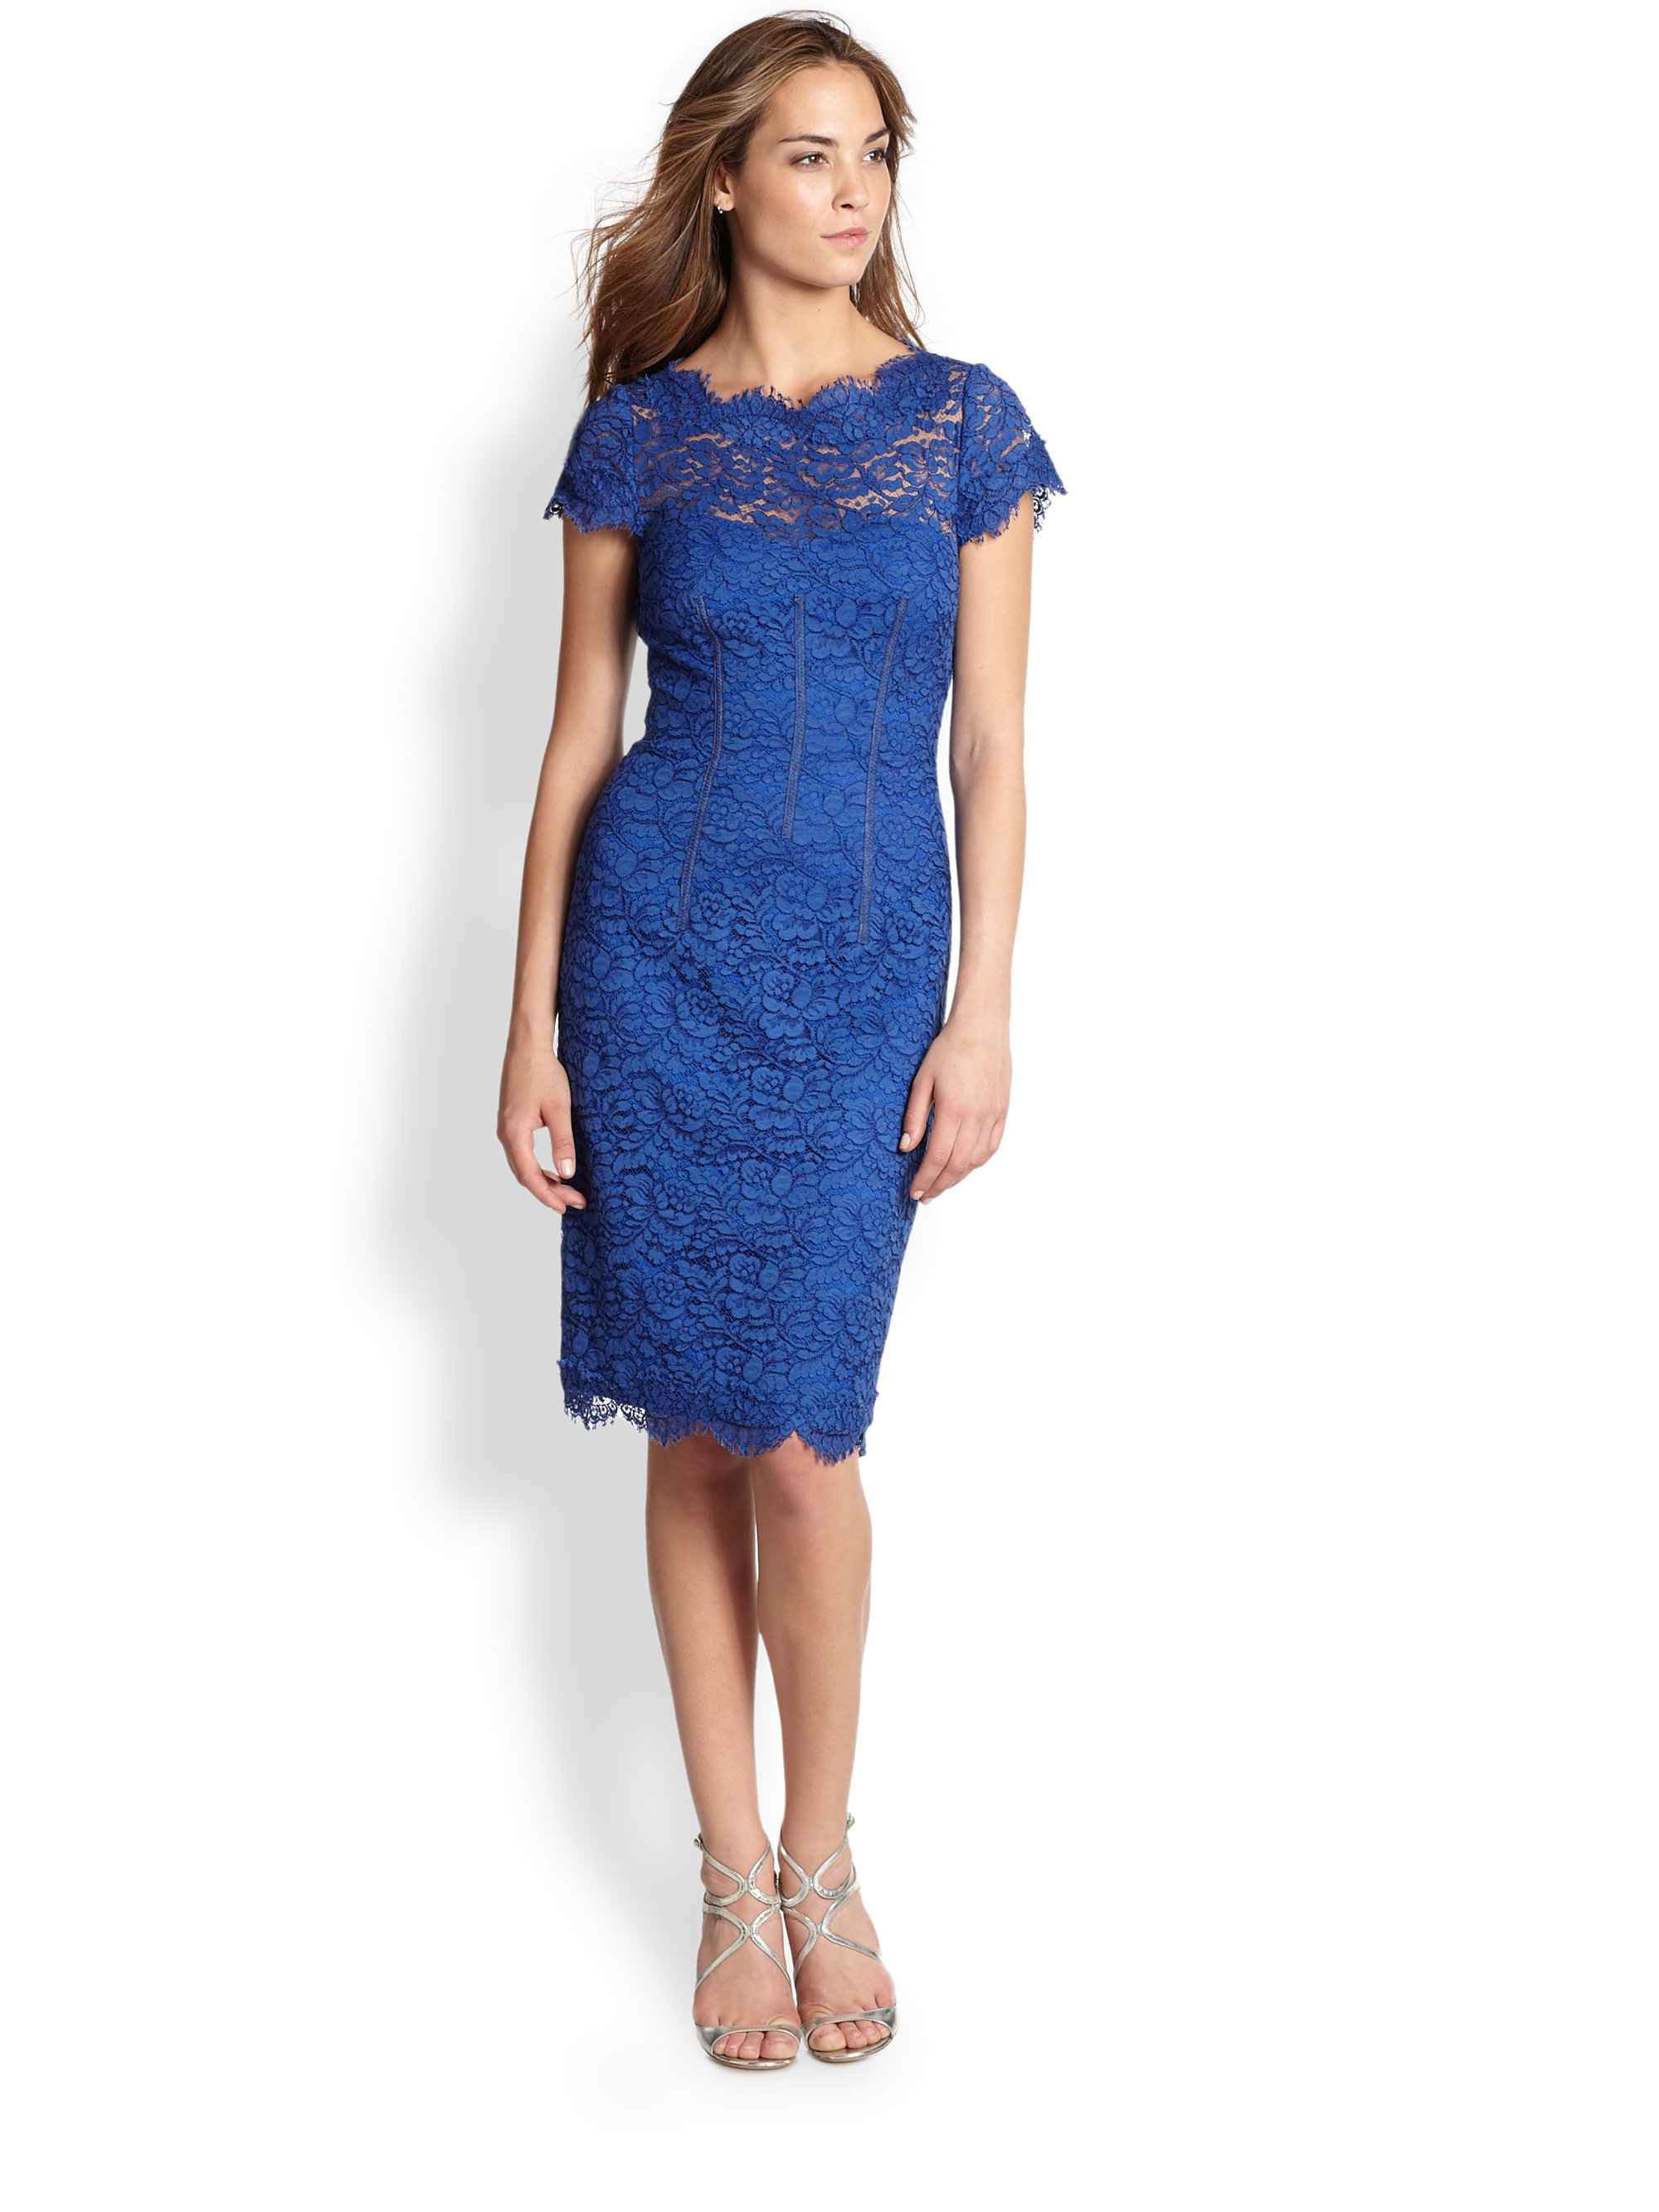 Lyst - Ml monique lhuillier Diamond back Lace Dress in Blue